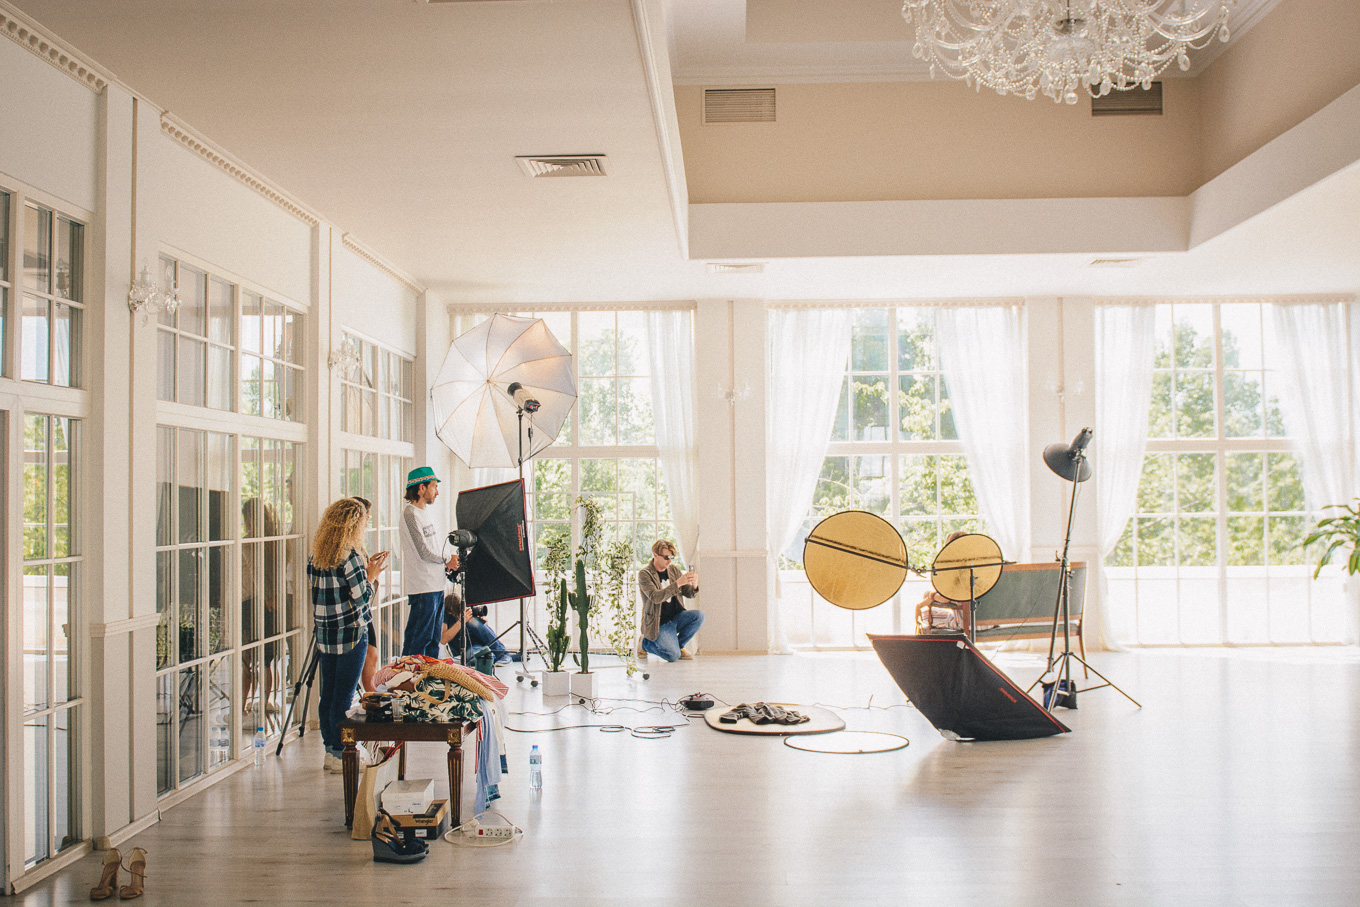 The shooting process for bulgaria mall summer campaign